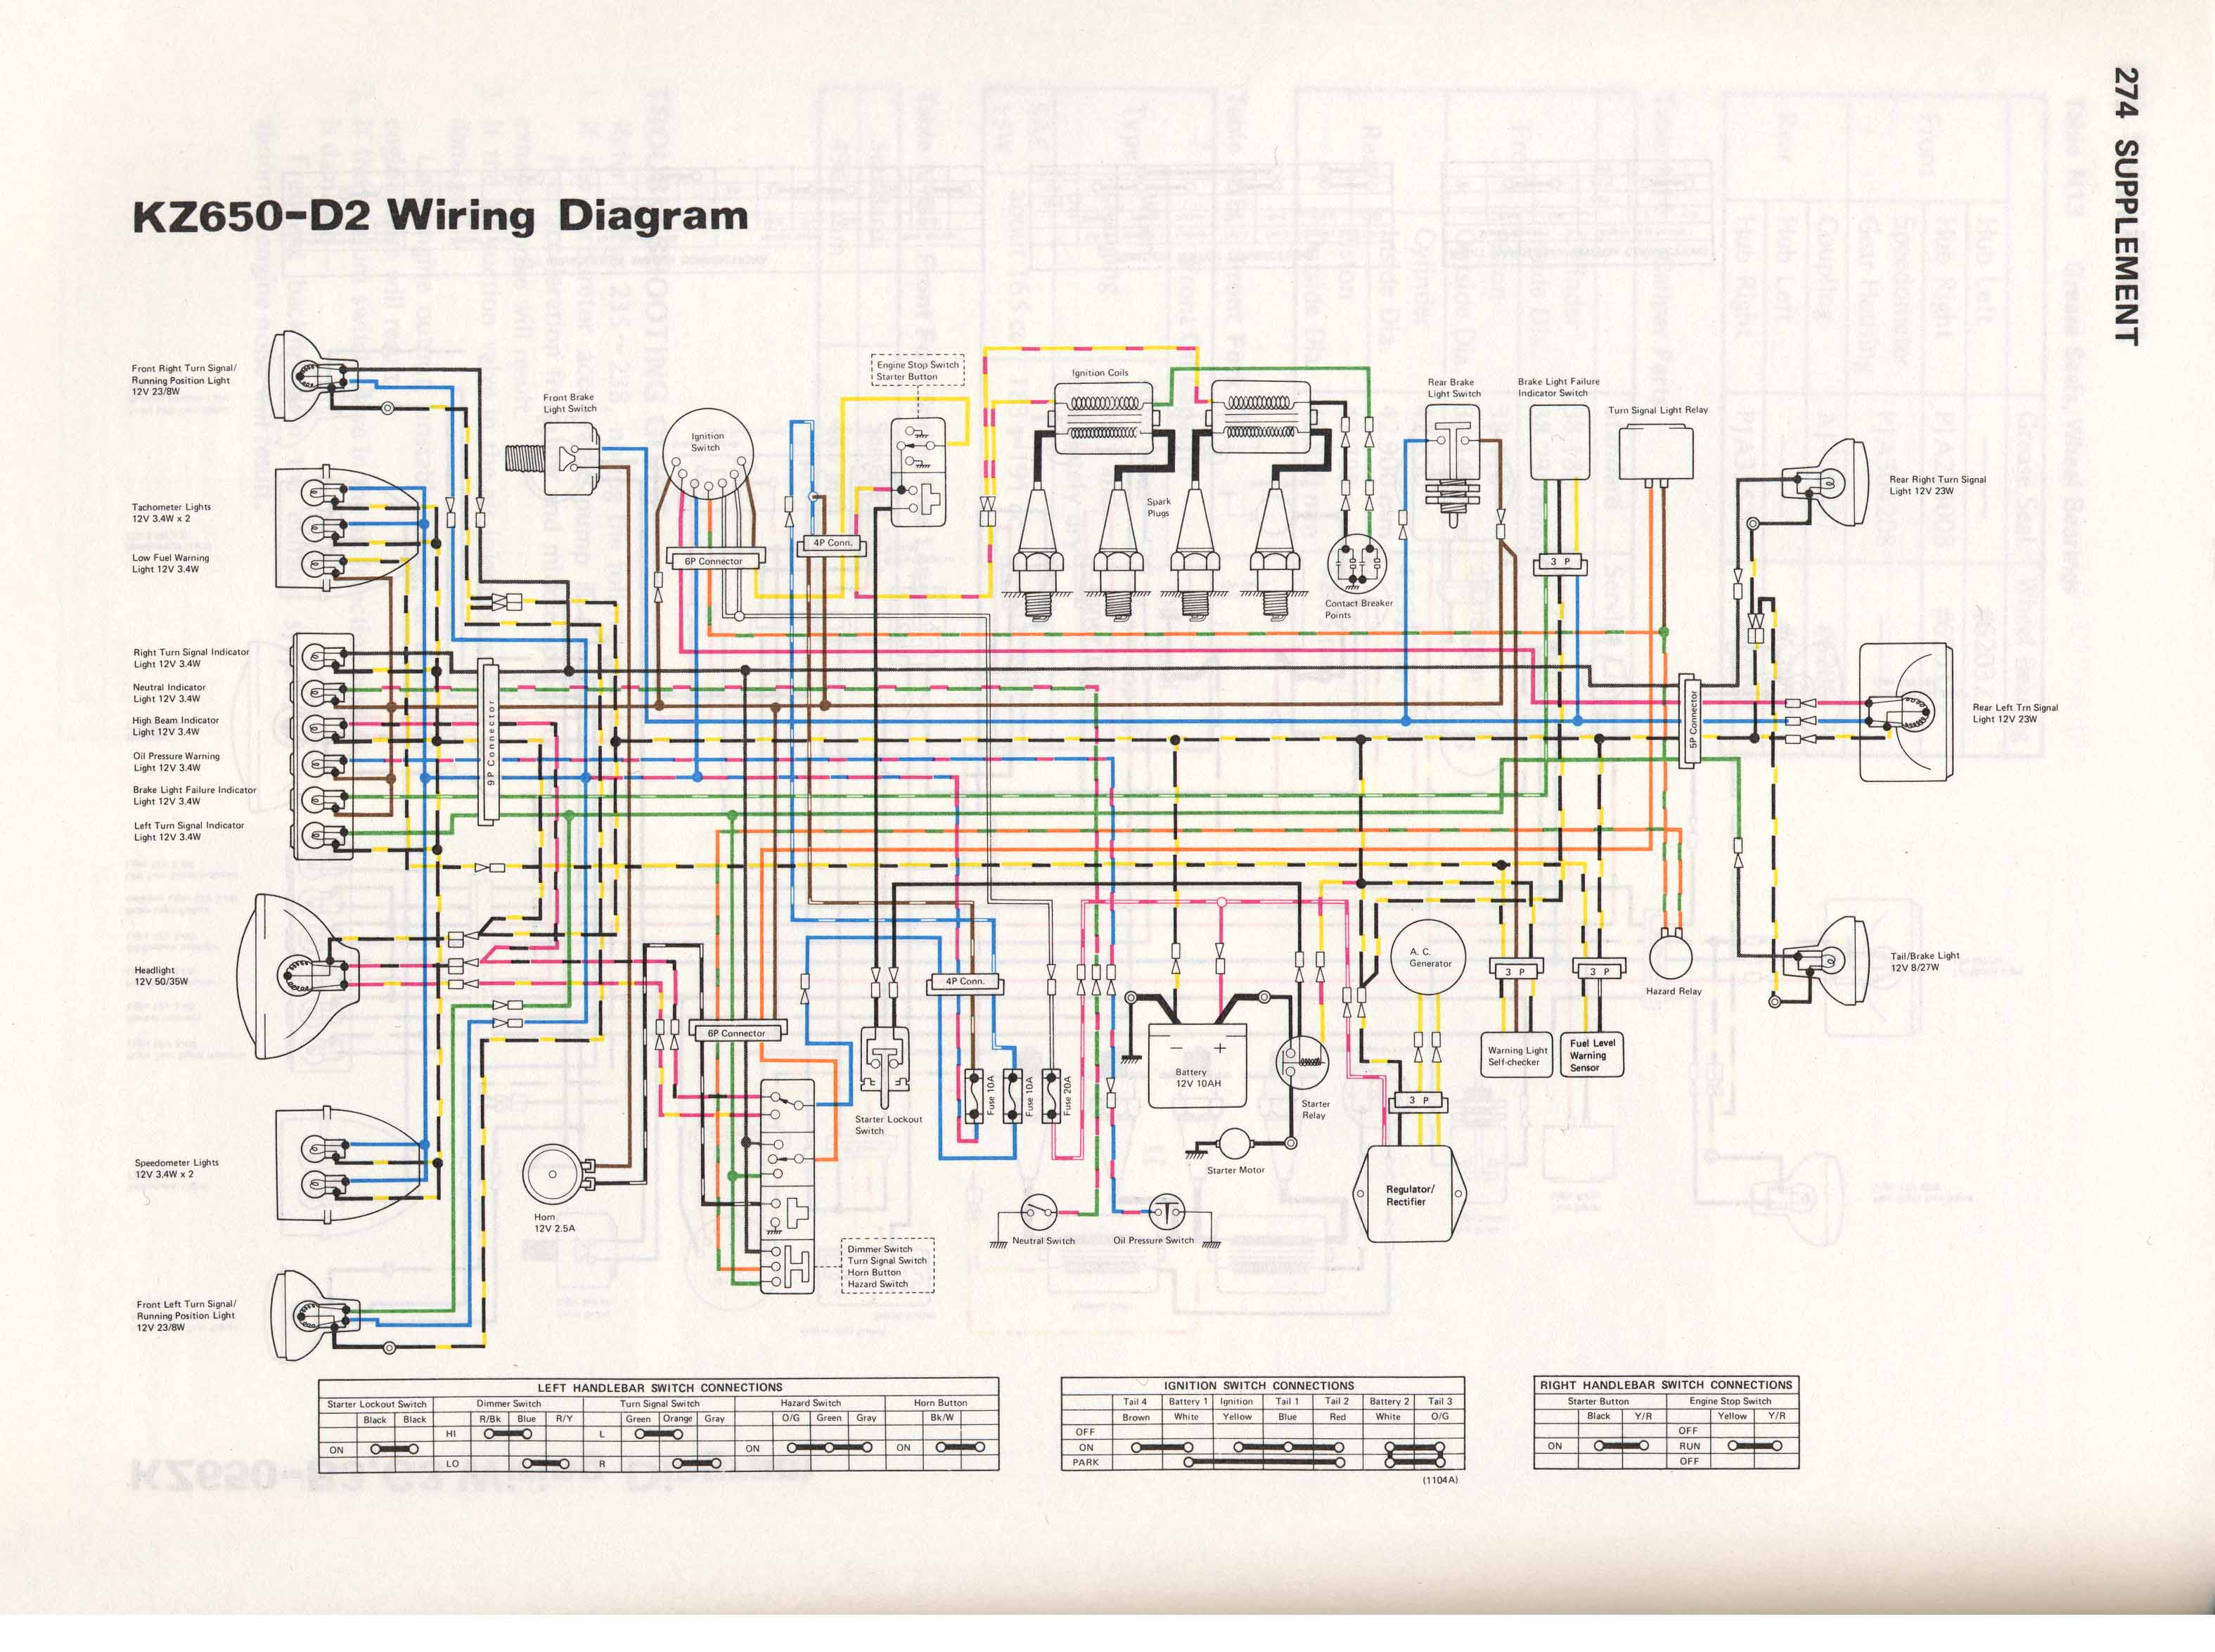 KZ650 D2 kz650 info wiring diagrams 1981 kawasaki kz750 wiring harness at readyjetset.co